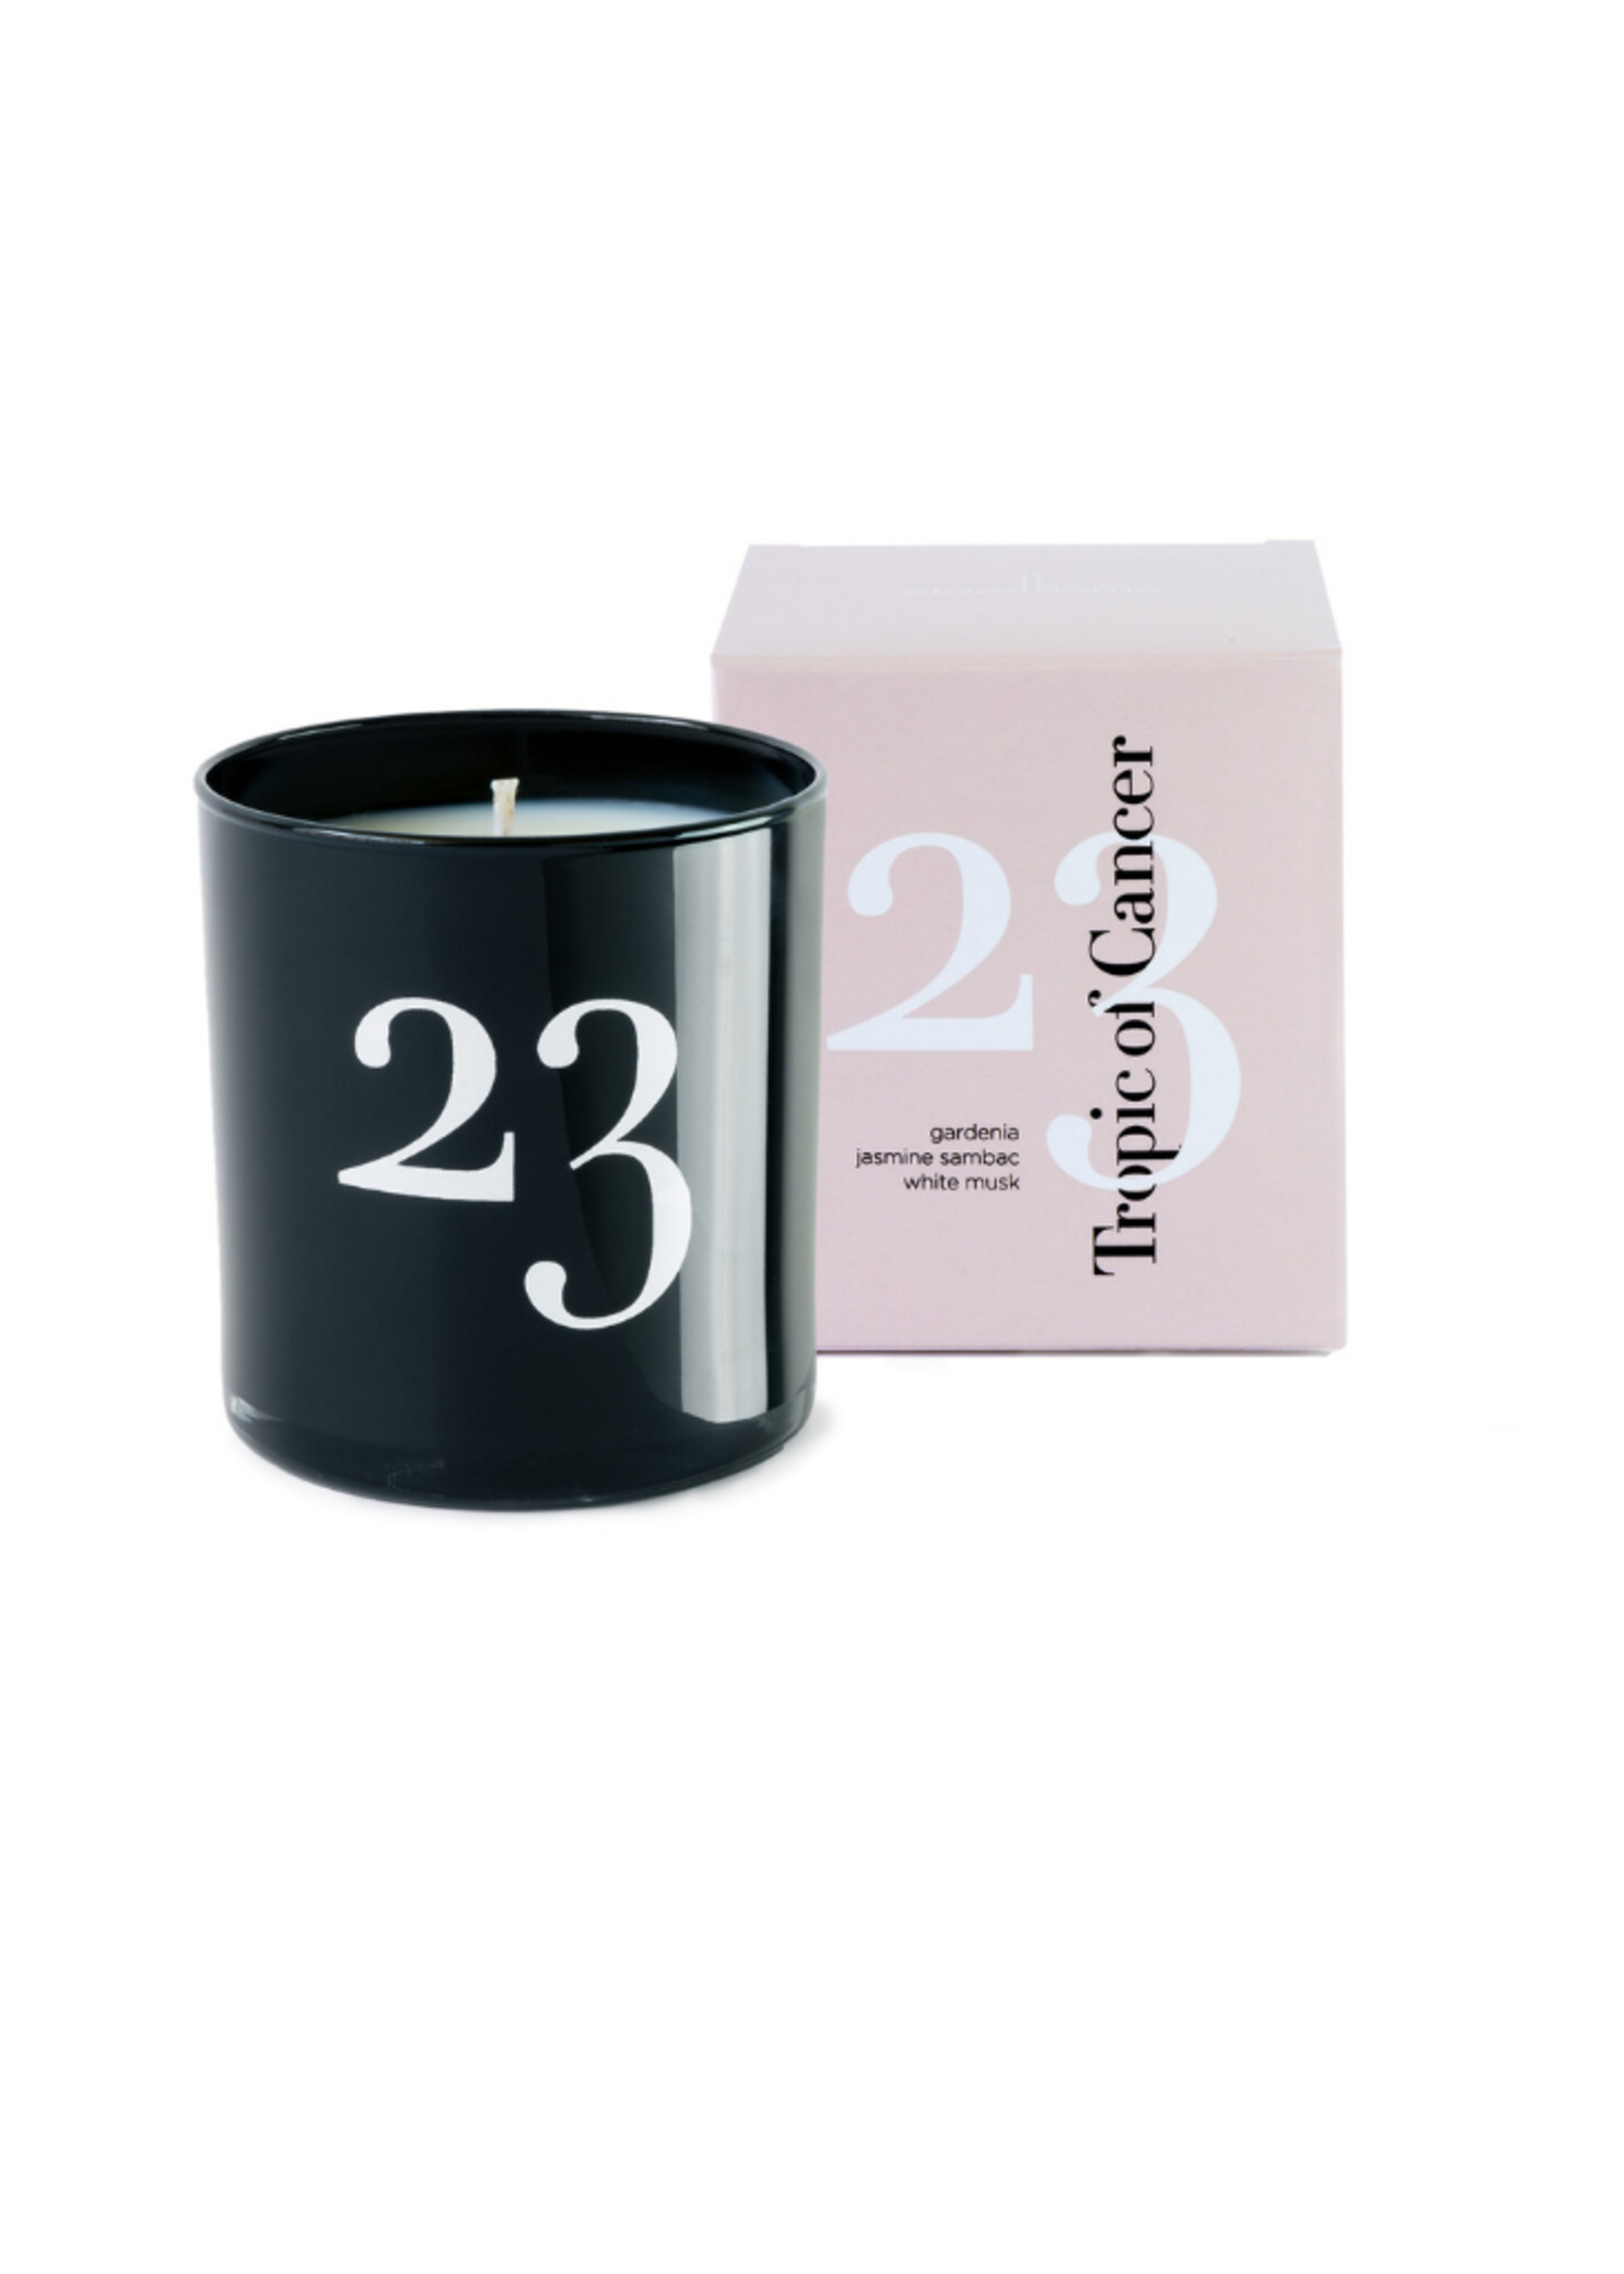 Studio Stockhome 23 Tropic of Cancer Candle